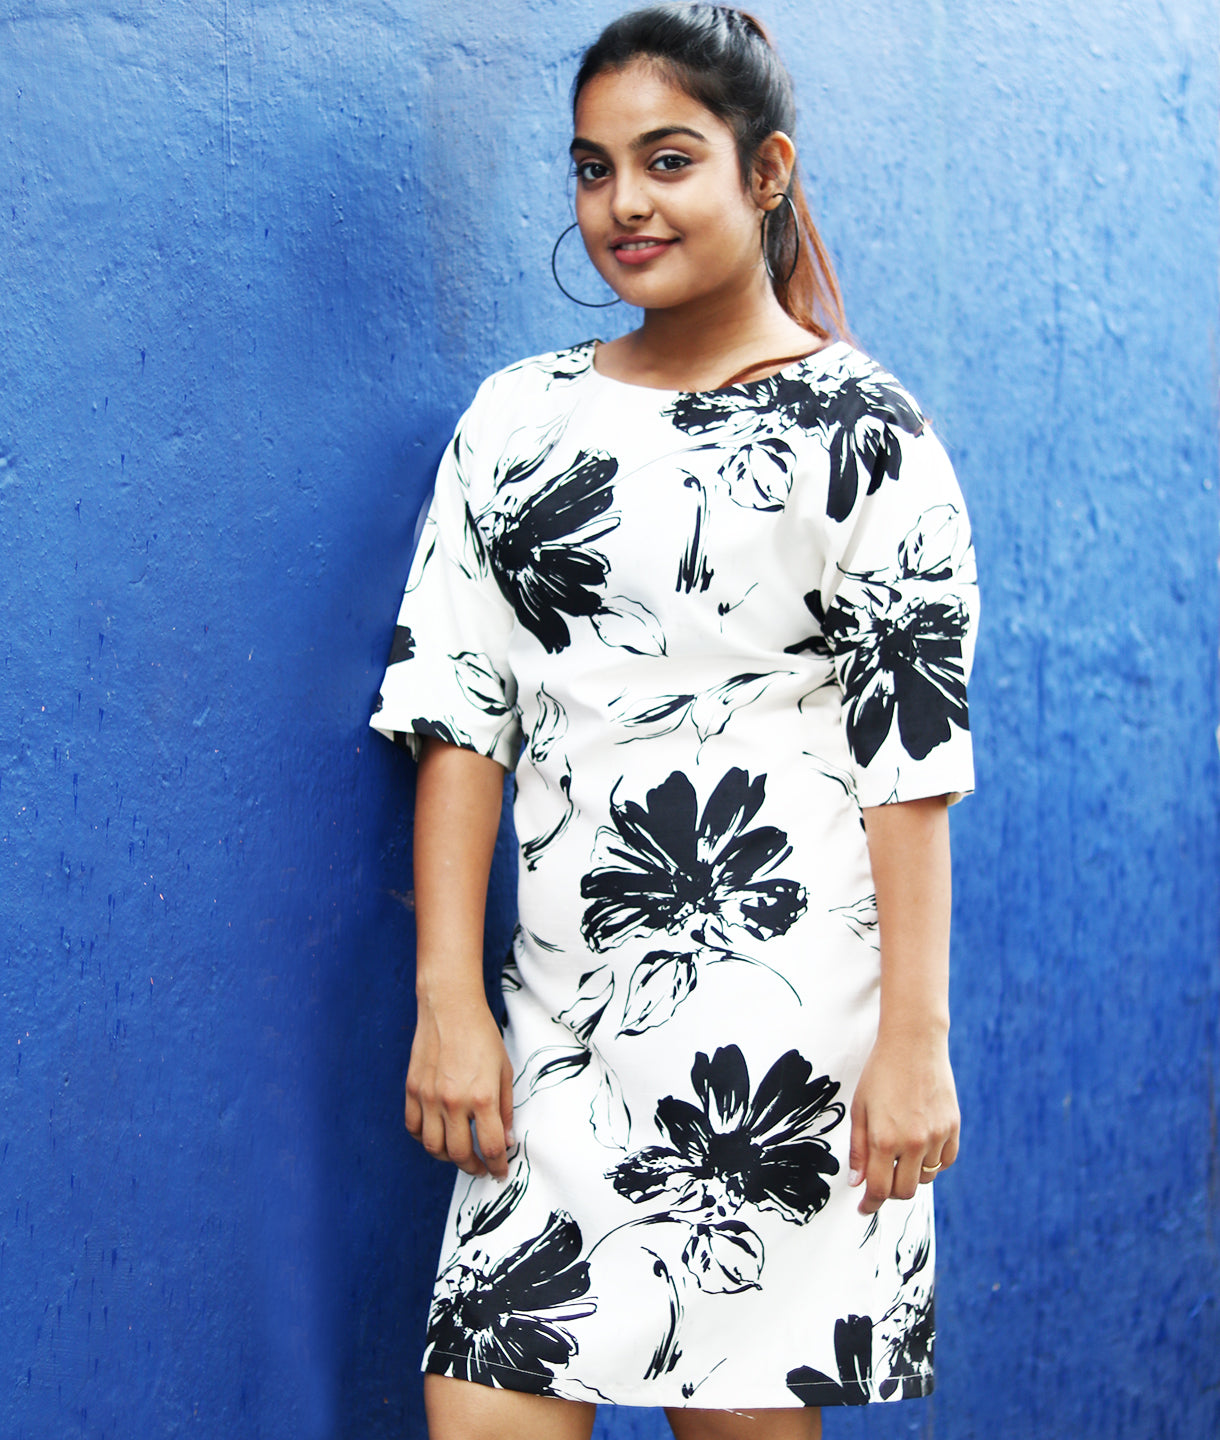 Uptownie X Pearl-Black & White Floral Printed Satin Dress - Uptownie